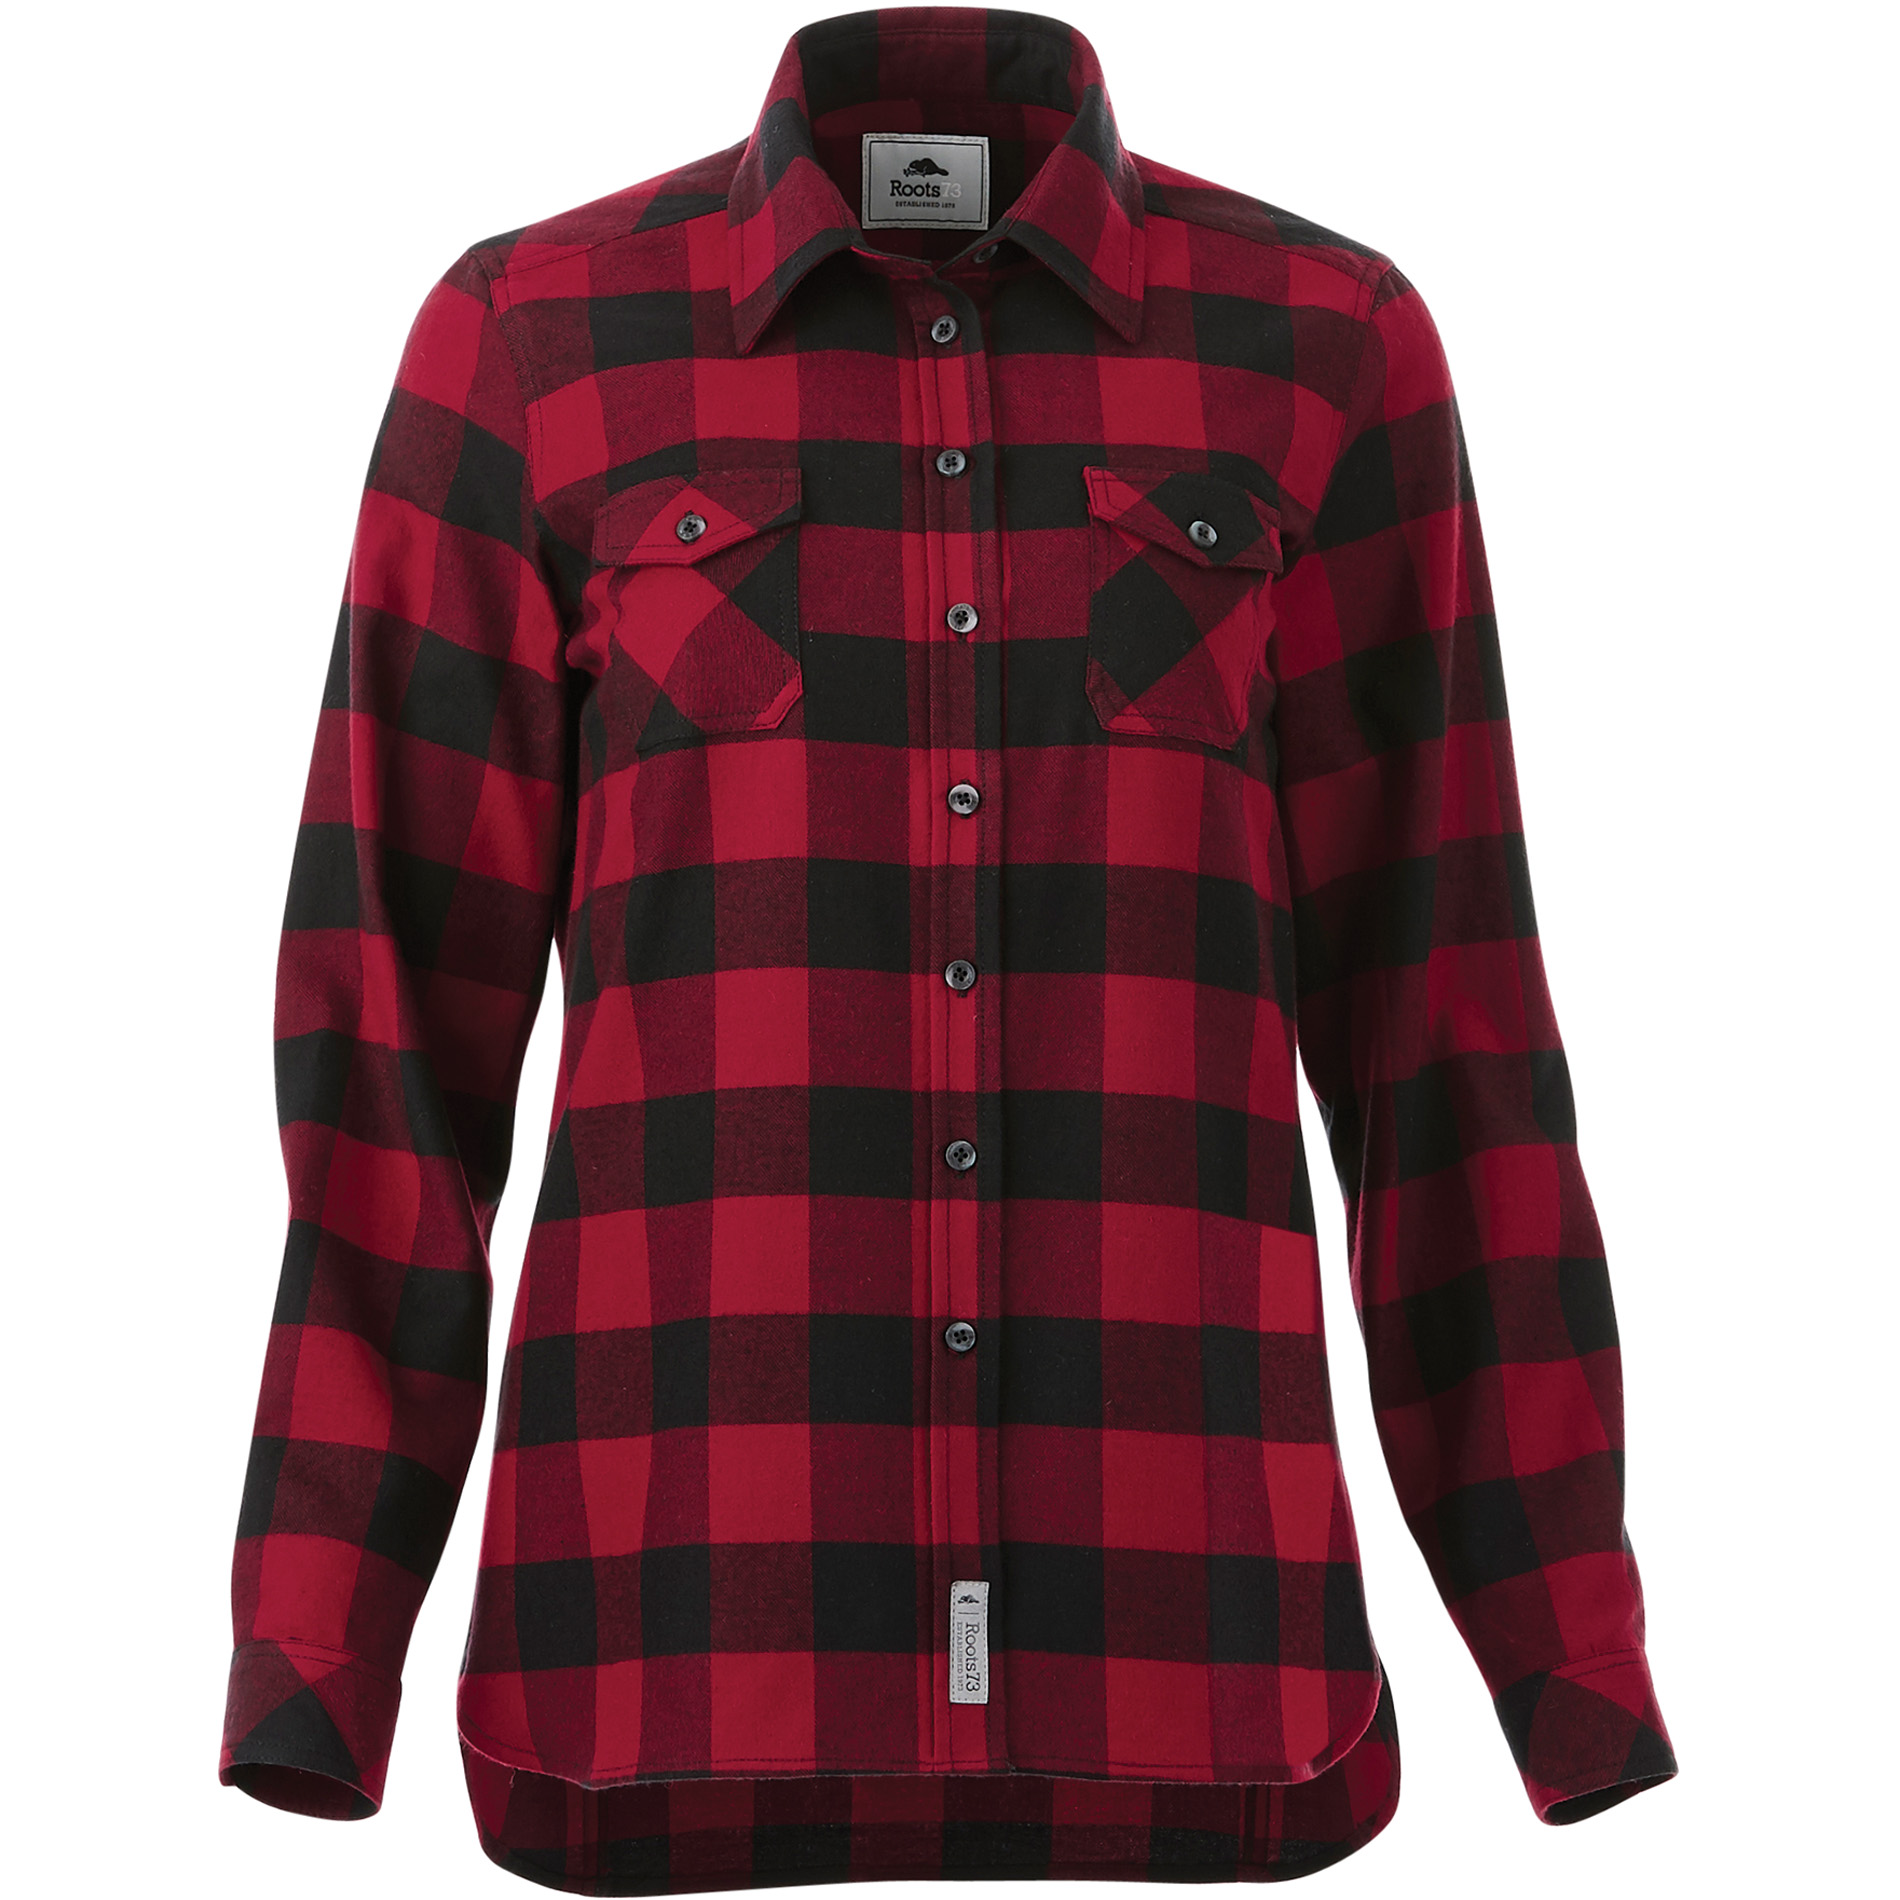 Roots73 TM97603 - W-SPRUCELAKE Roots73 Long Sleeve Shirt